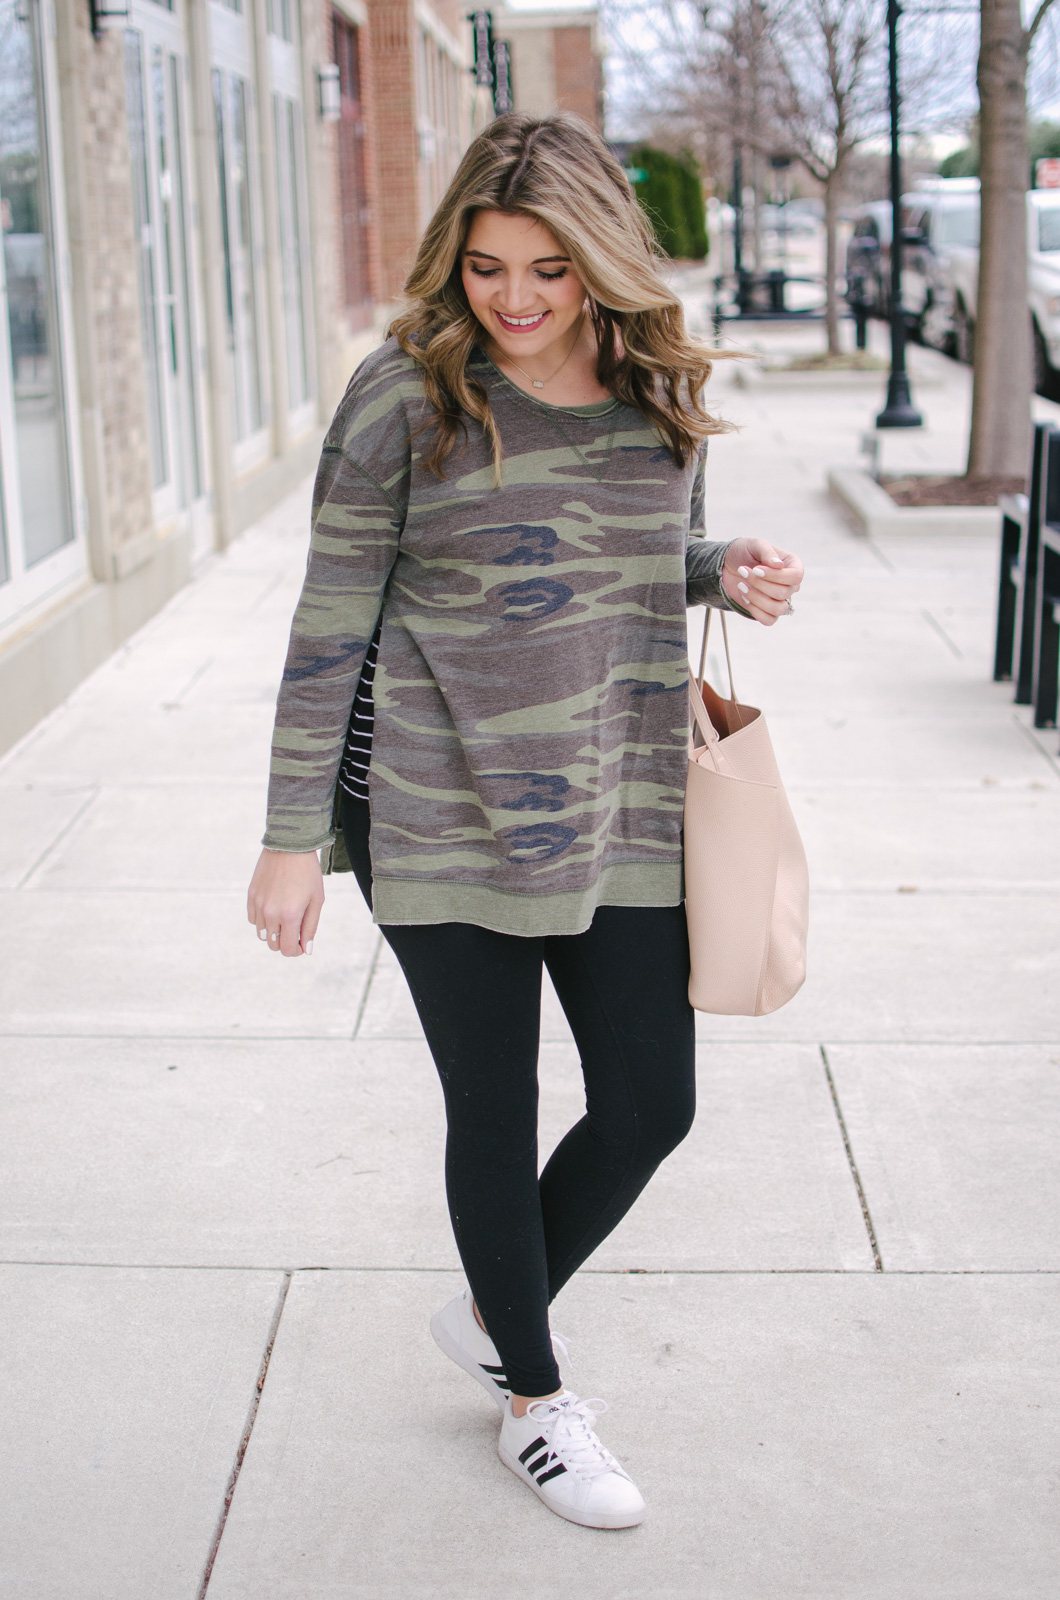 my current fav winter leggings outfit - I can't quit wearing this camo pullover! | Get all the outfit details or see more cute leggings outfits at bylaurenm.com!